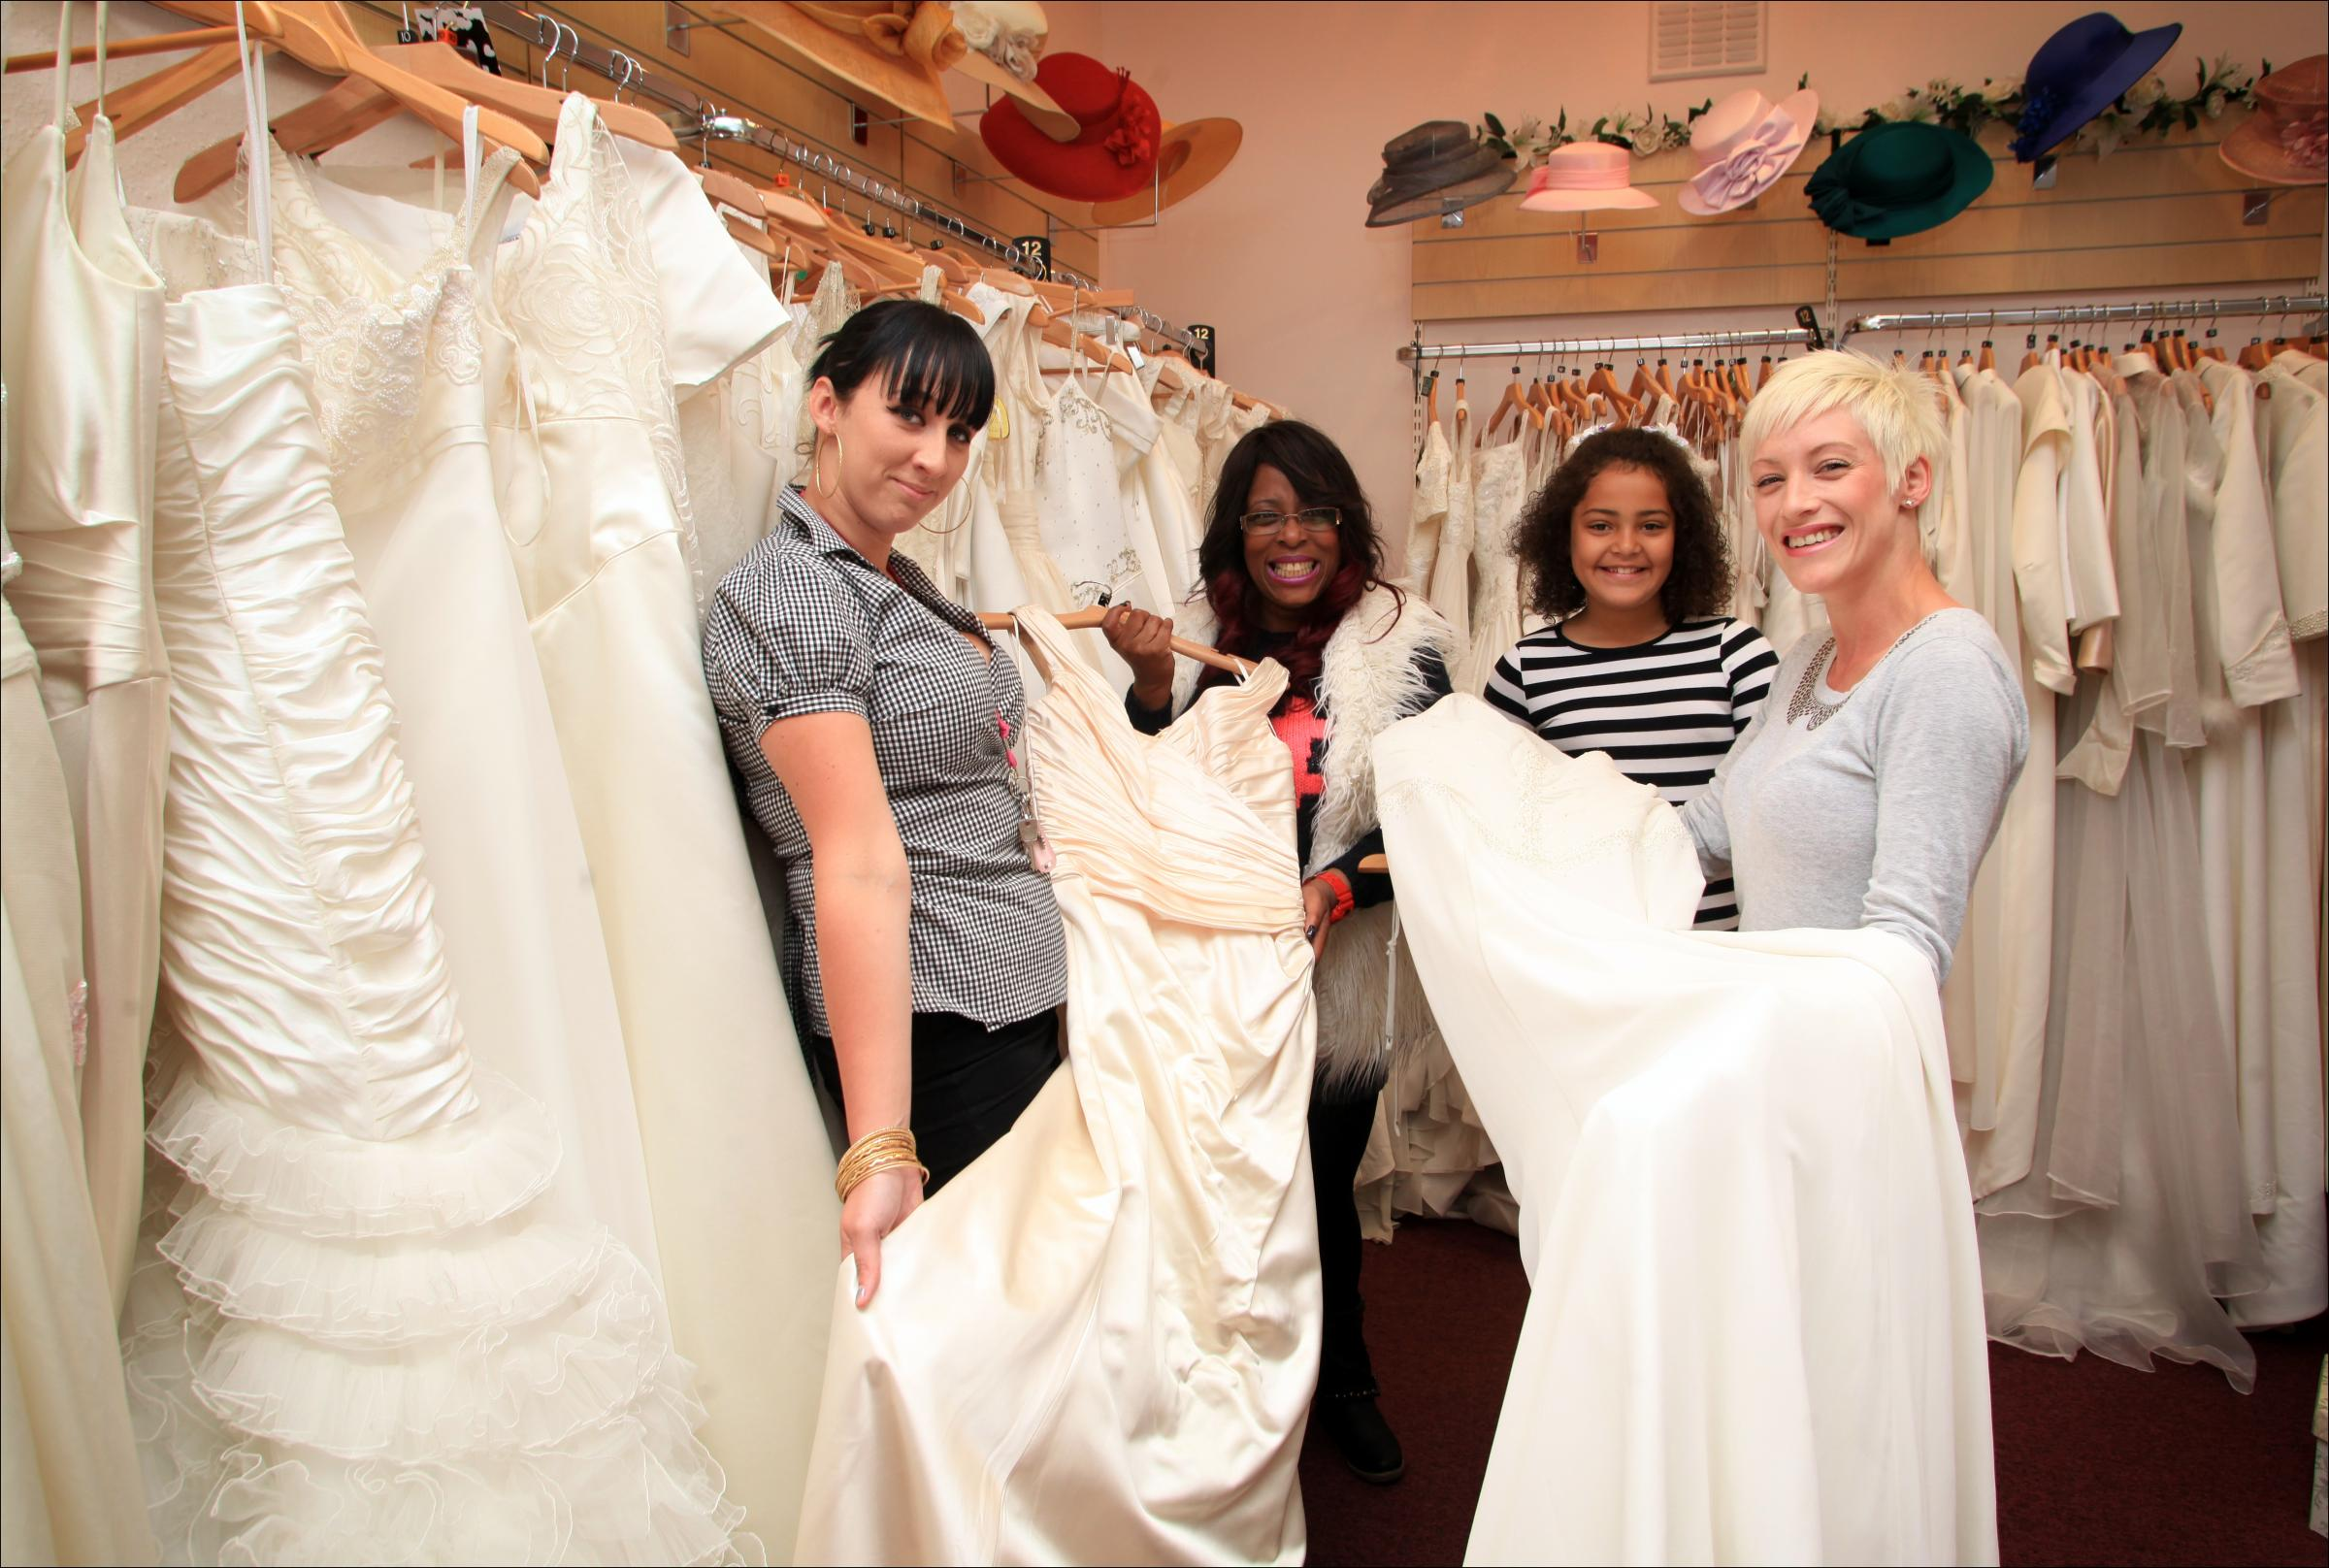 Bridal bargains: the designer wedding dresses at Oxfam | Daily Echo